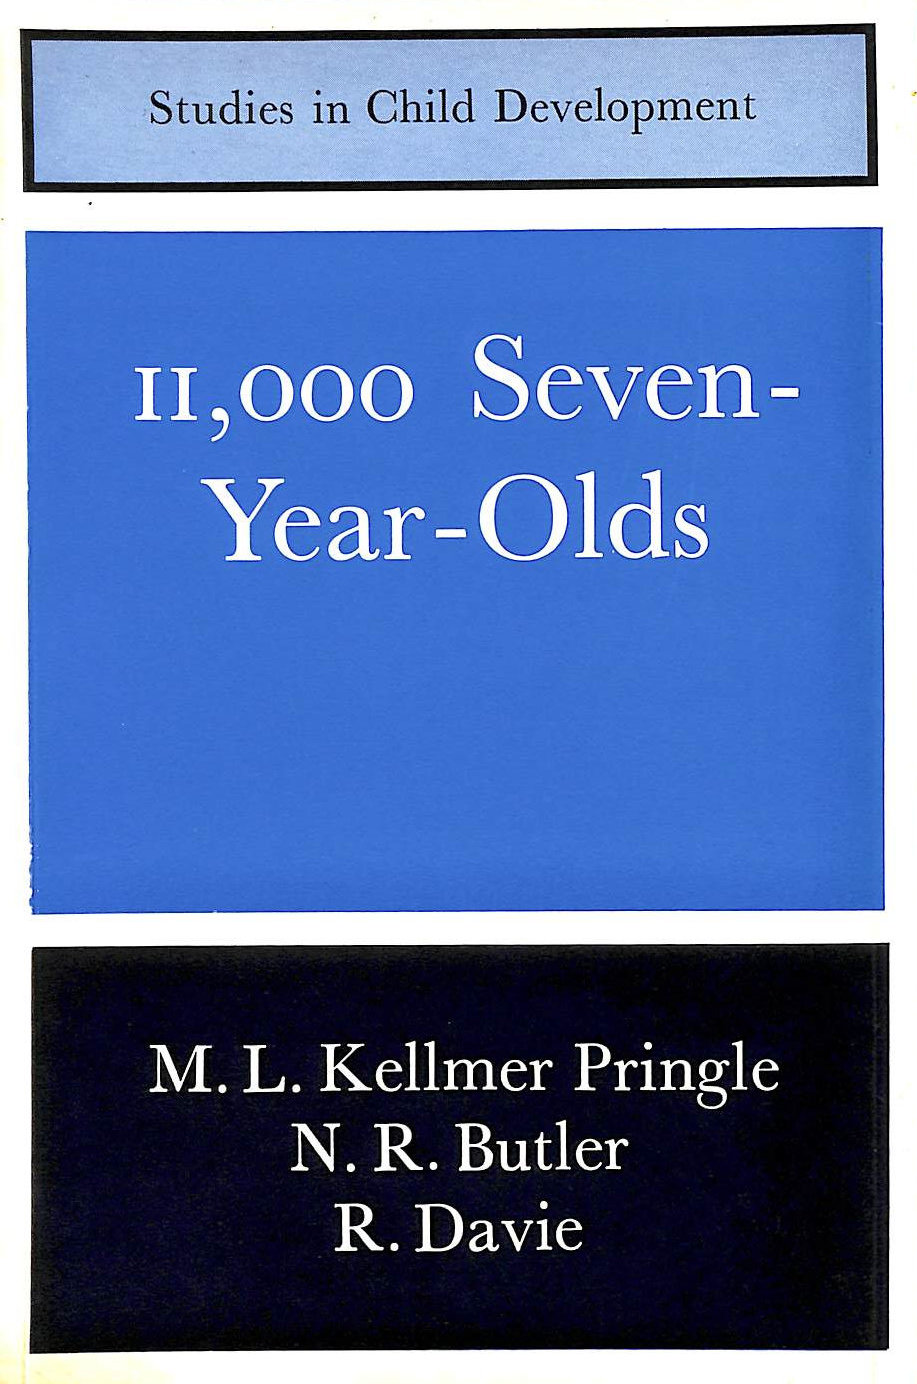 Image for 11,000 Seven-Year-Olds